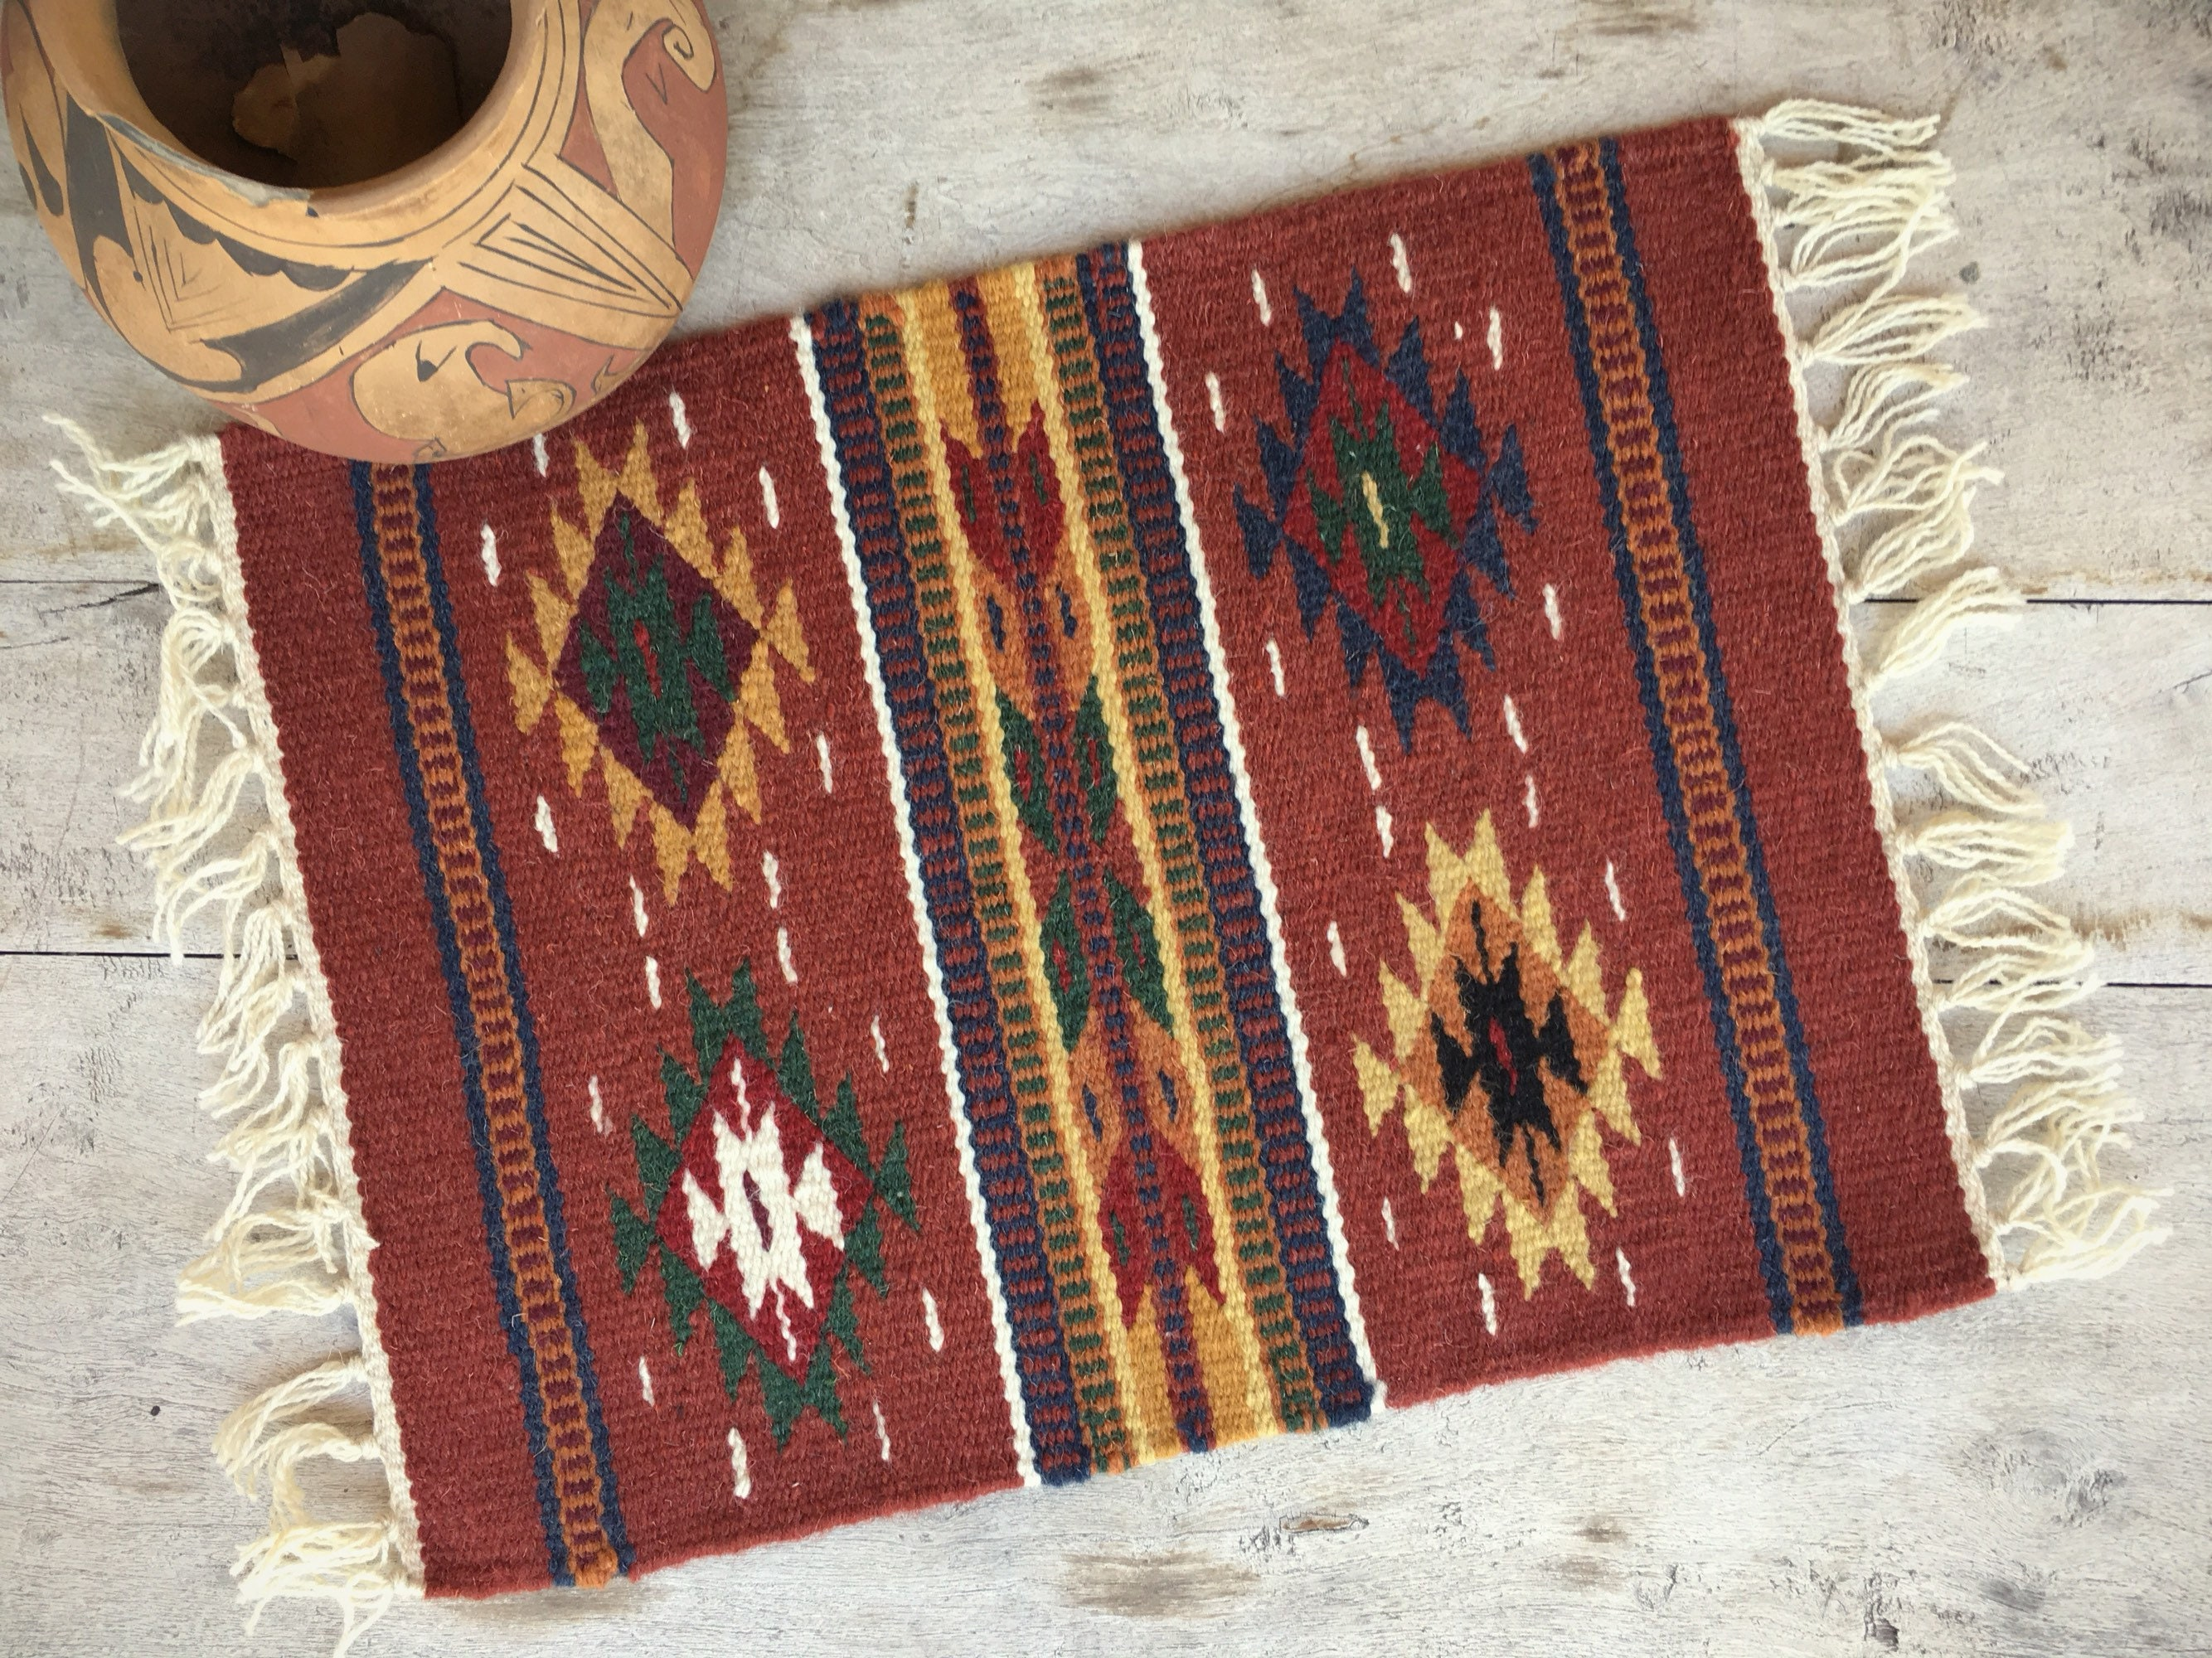 Woven Wool Placemat Wall Hanging Tapestry Or Table Runner Rustic Red Decor,  Small Accent Rug Zapotec, Southwestern Mexican Decor, Boho Decor